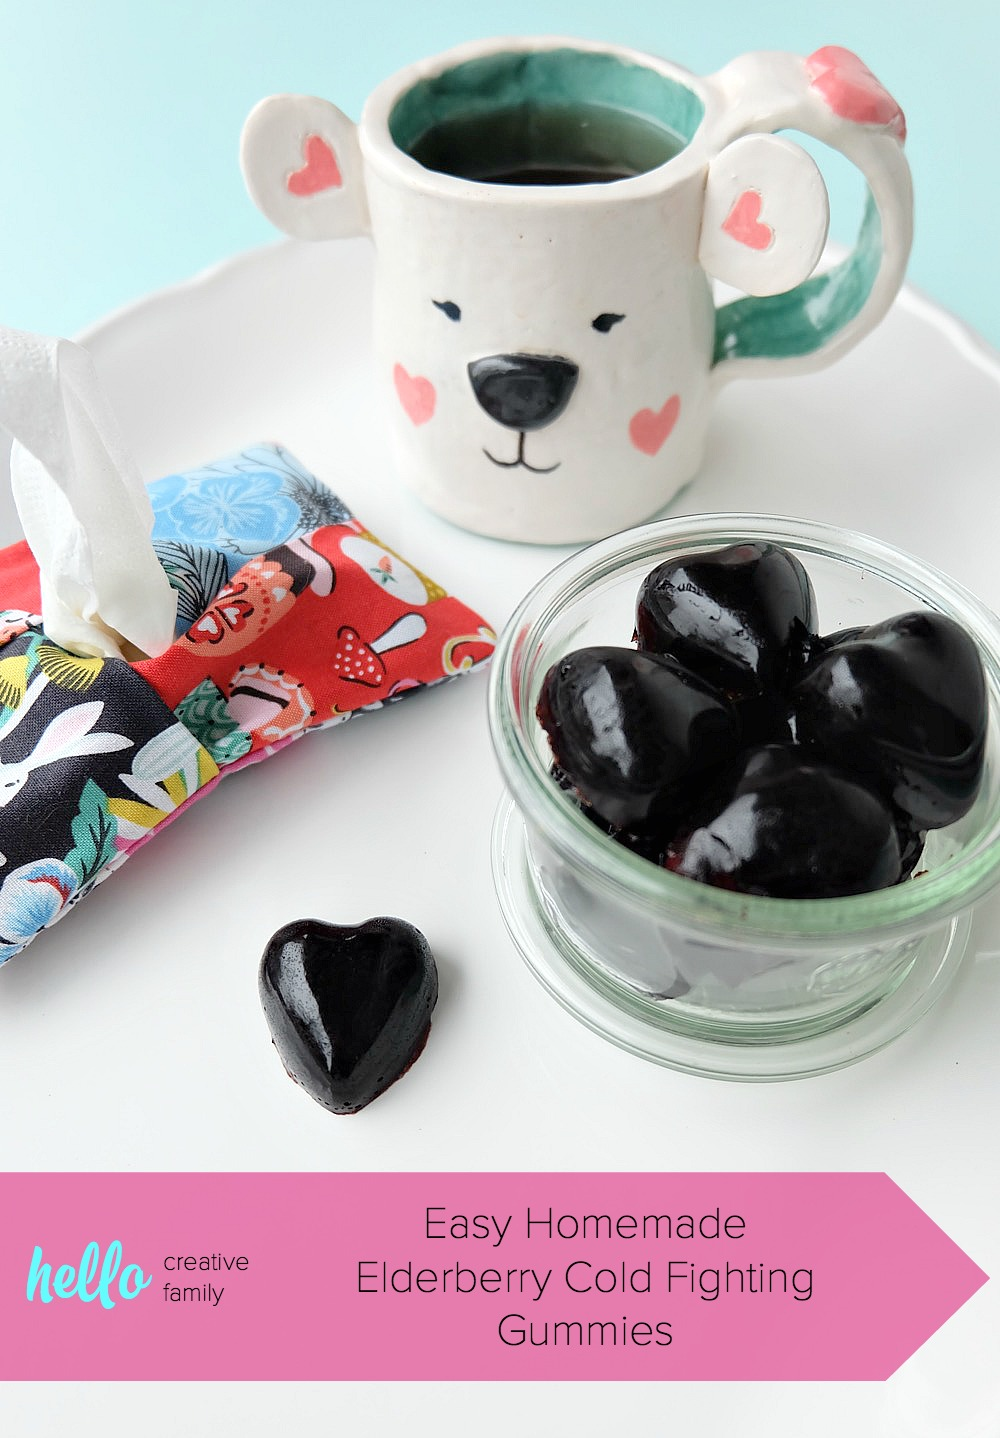 Sooth a sore throat and eliminate cold and flu symptoms with this easy, DIY cold remedy! This Easy Homemade Elderberry Cold Fighting Gummies recipe is great for cold prevention, boosting the immune system, soothing sore throats and helping your body kick a cold fast! Perfect for kids and adults! Also includes a recipe for elderberry syrup. #Recipe #Health #healthandwellness #DIY